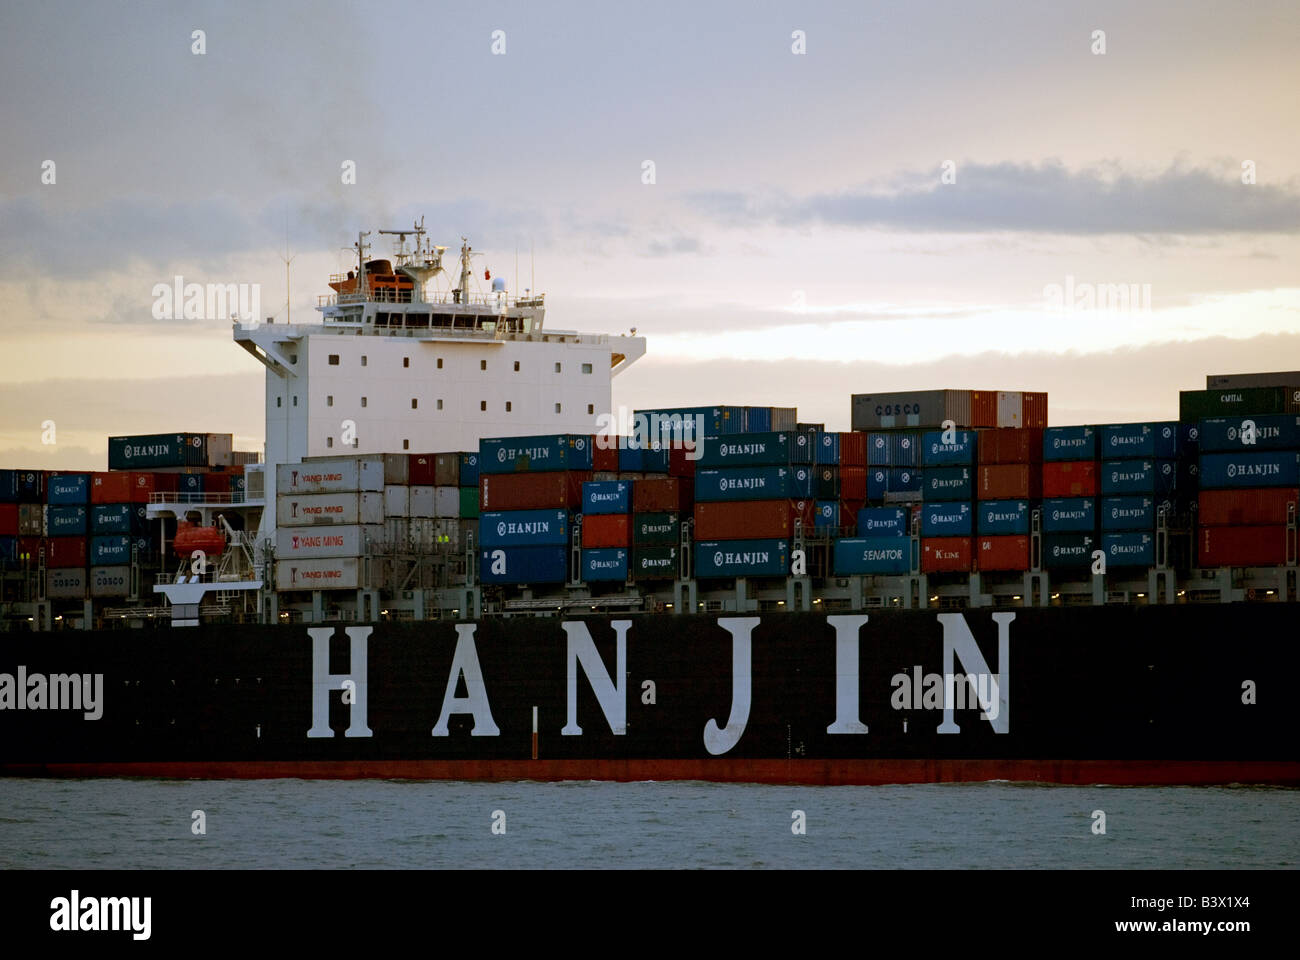 Hanjin Shenzhen container ship, the 75,000 ton vessel was built in 2008 by Hyundai, seen here arriving in Felixstowe Stock Photo